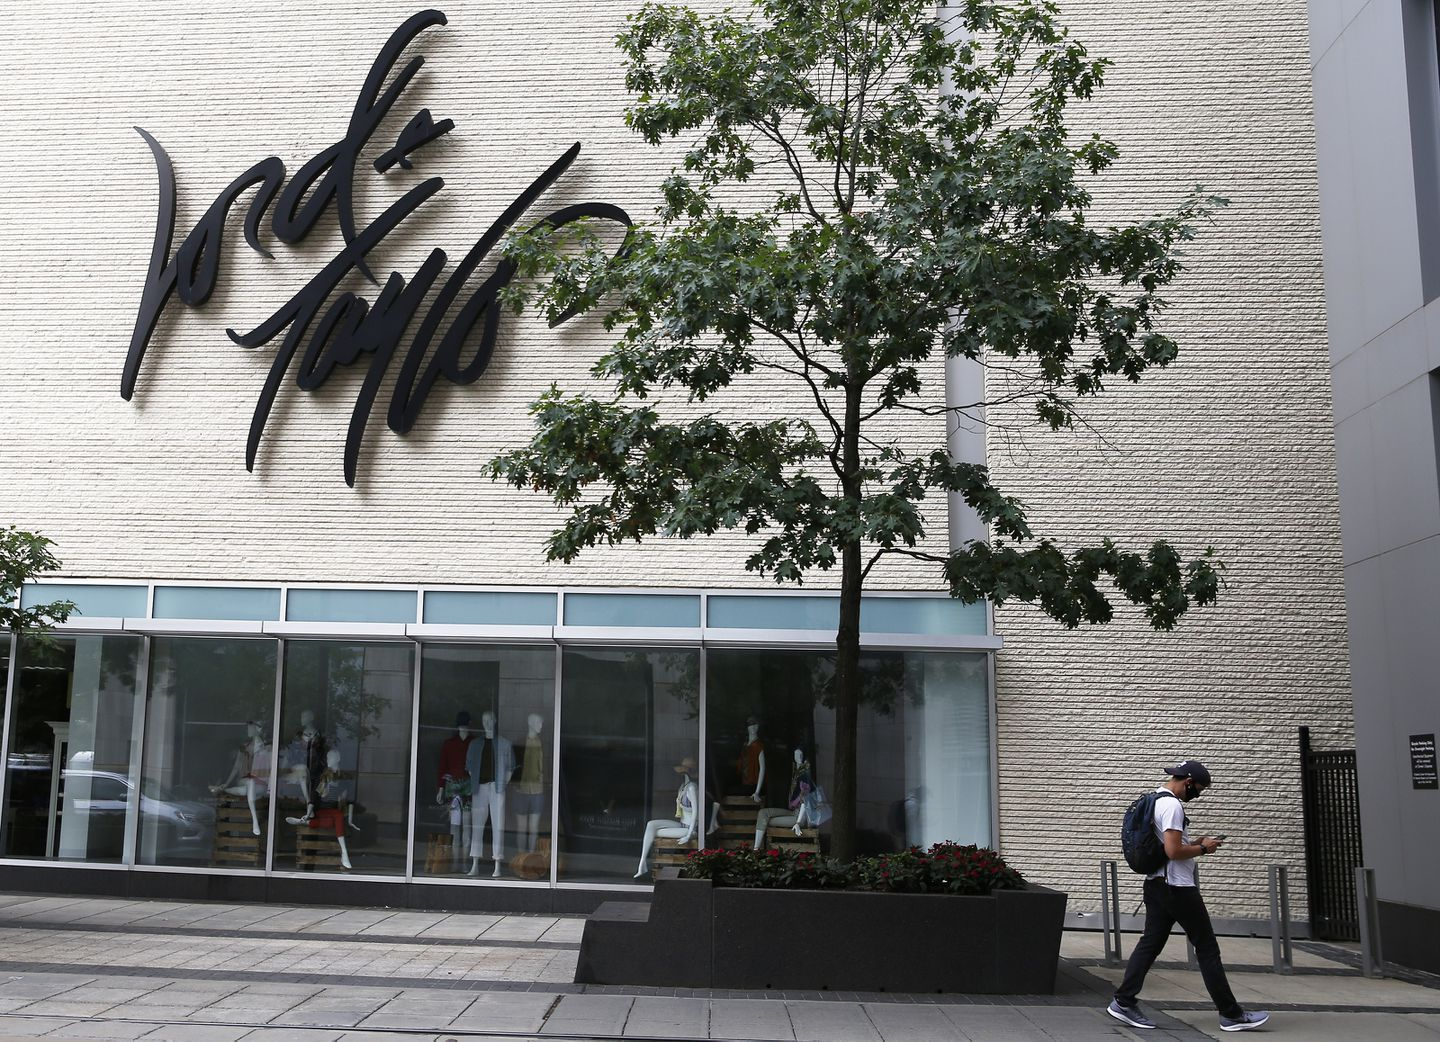 Lord Taylor Filing For Bankruptcy Plans To Close Two Boston Area Stores The Boston Globe